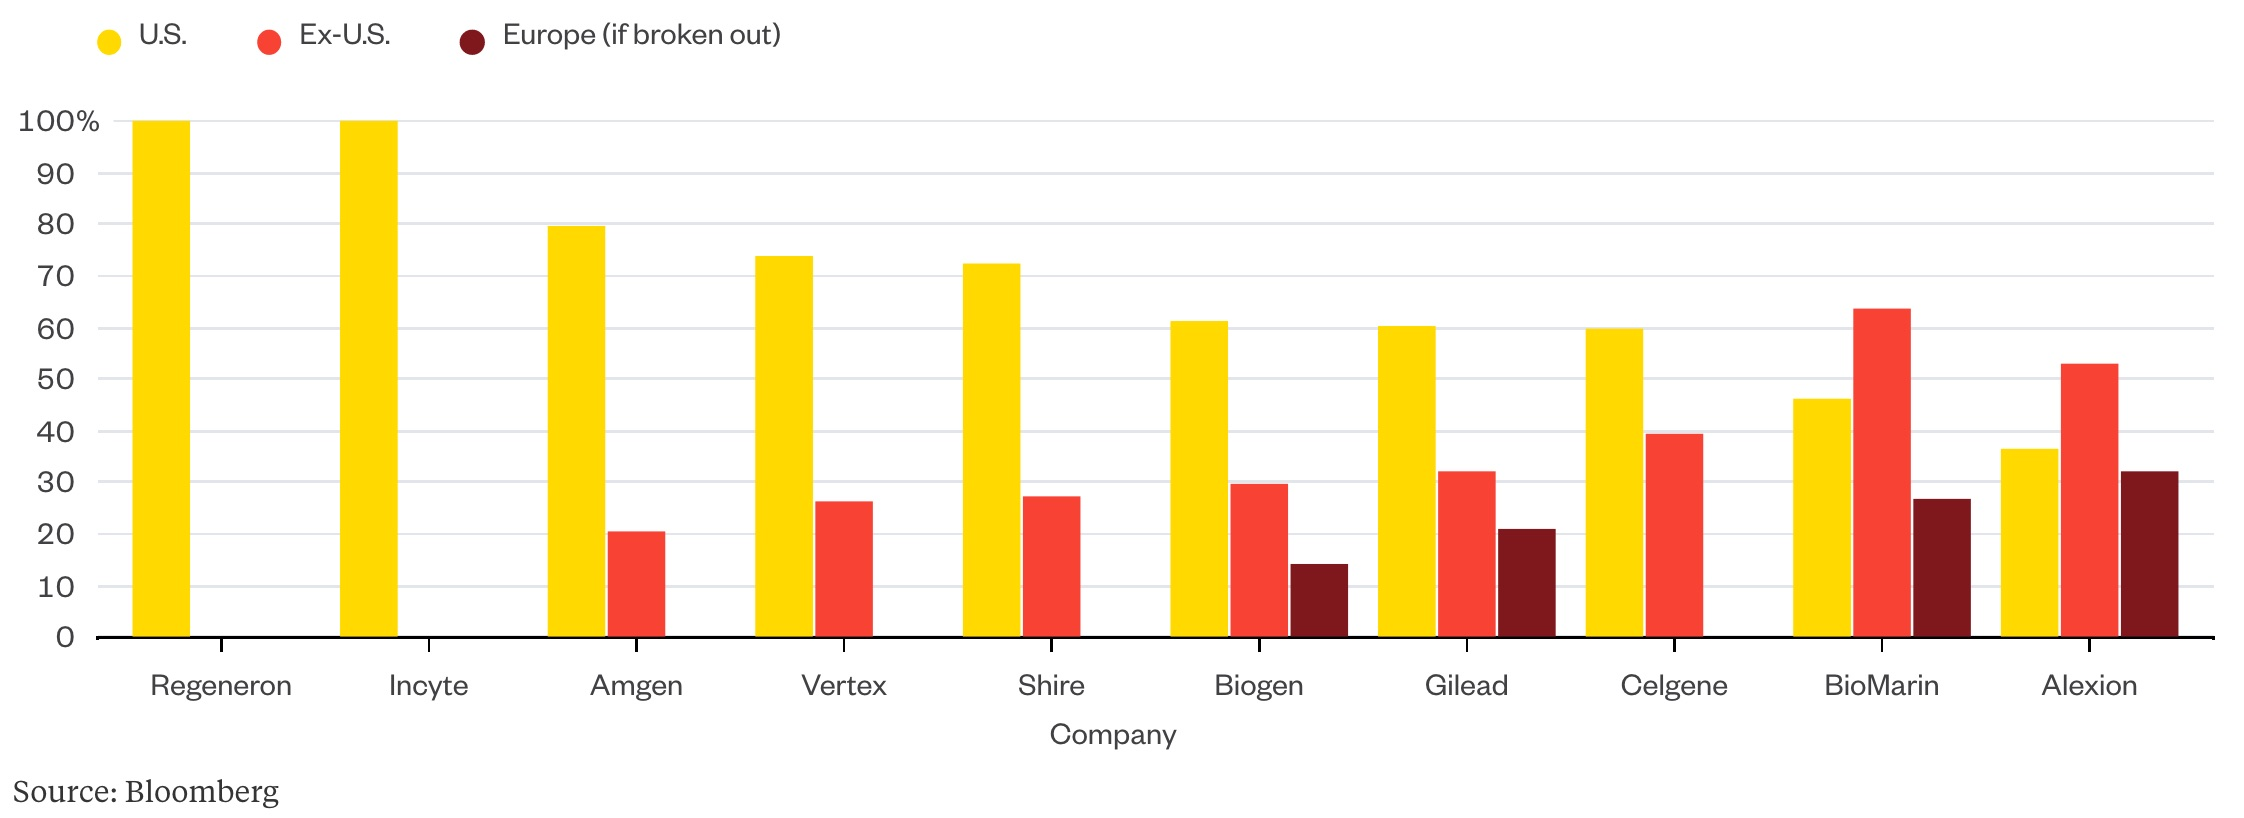 Most biotech firms derive a substantial majority of their revenue from the U.S.